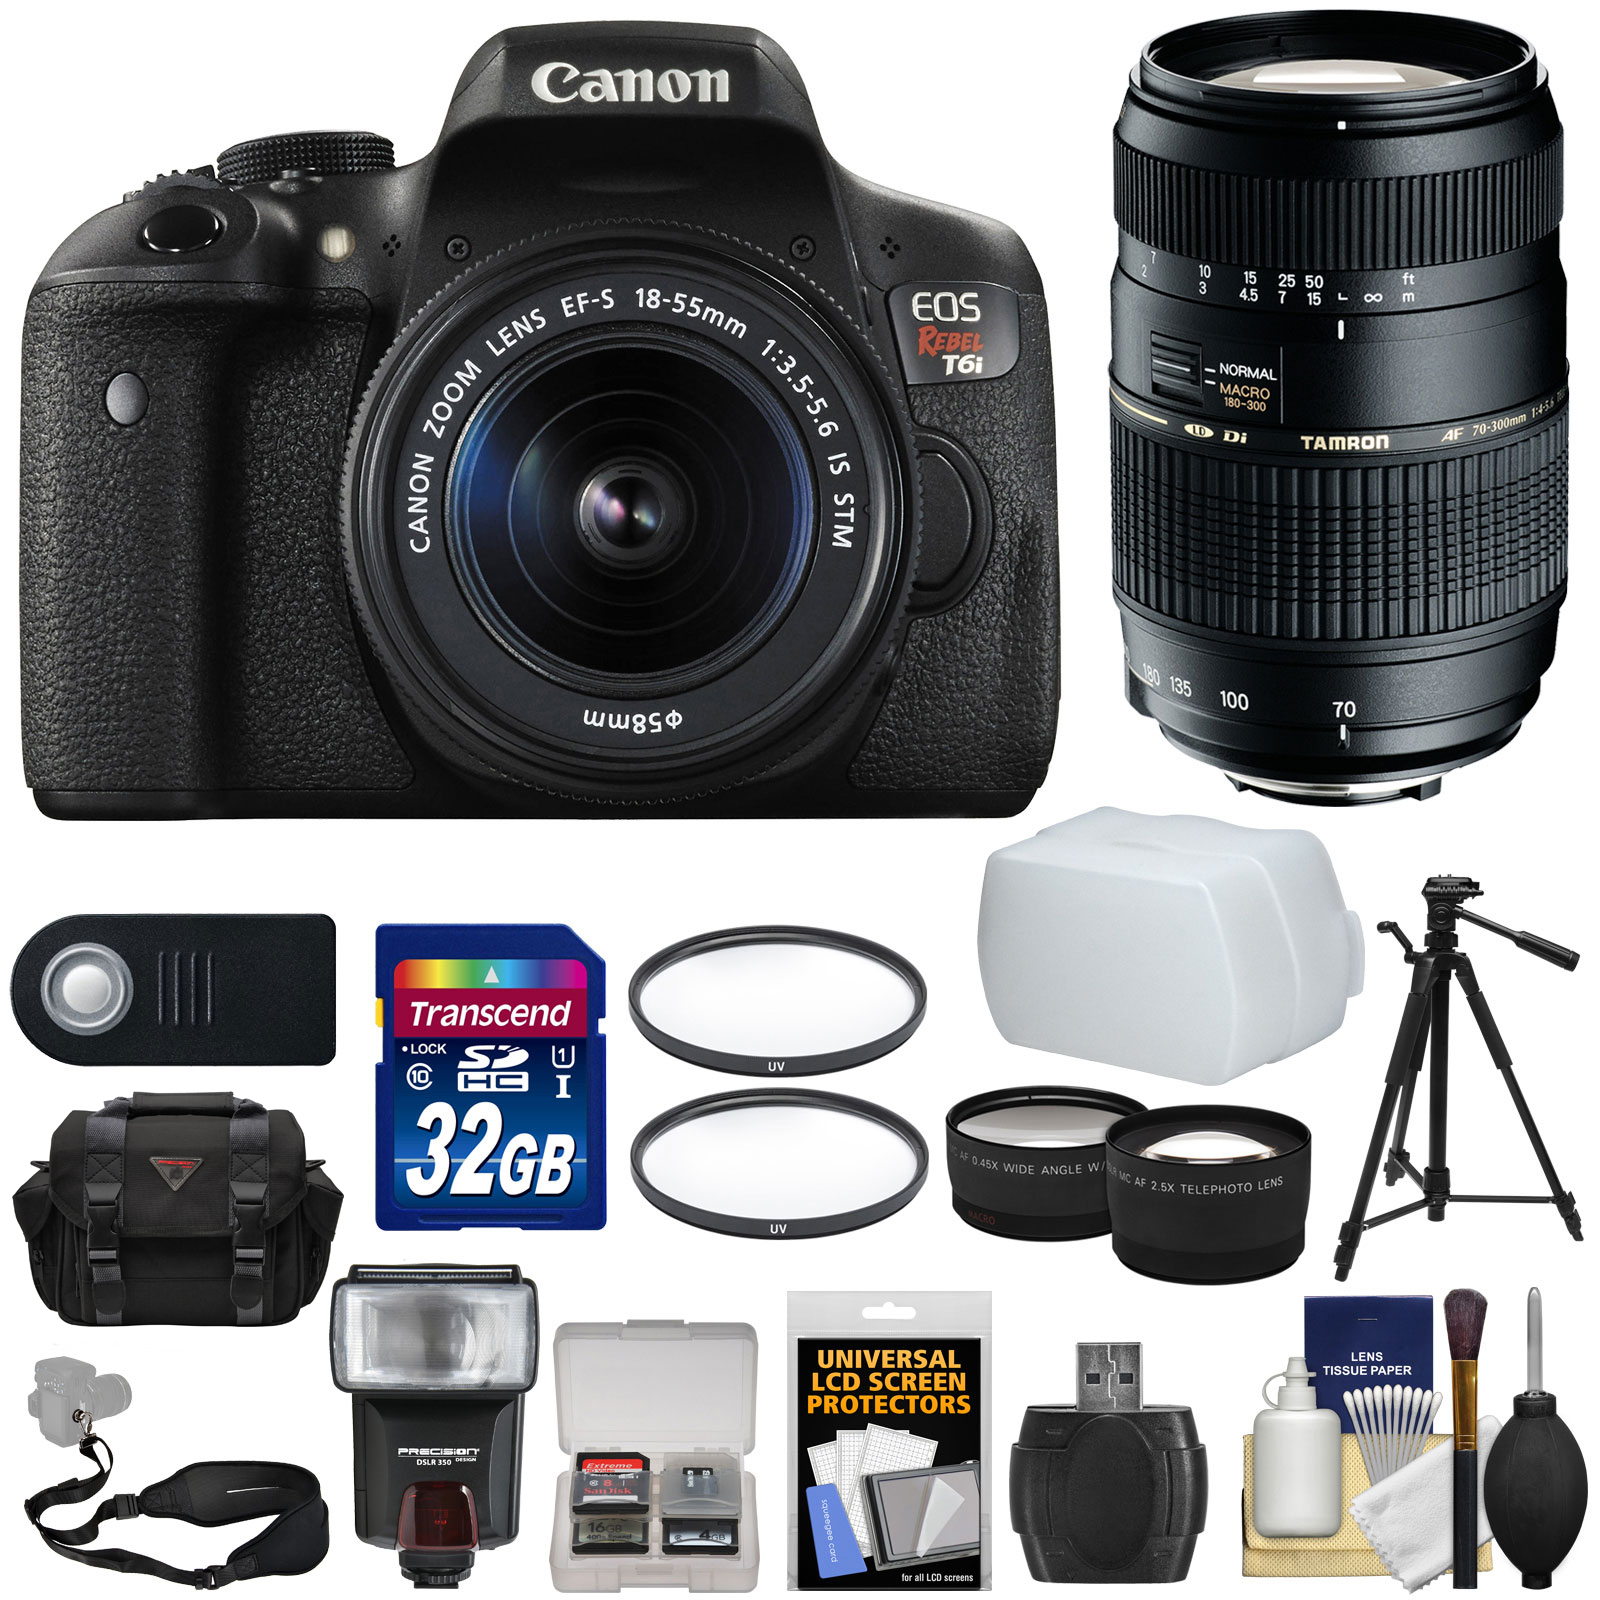 Canon EOS Rebel T6i Wi-Fi Digital SLR Camera & 18-55mm IS STM with 70-300mm Di Lens + Case + 32GB Card +... by Canon